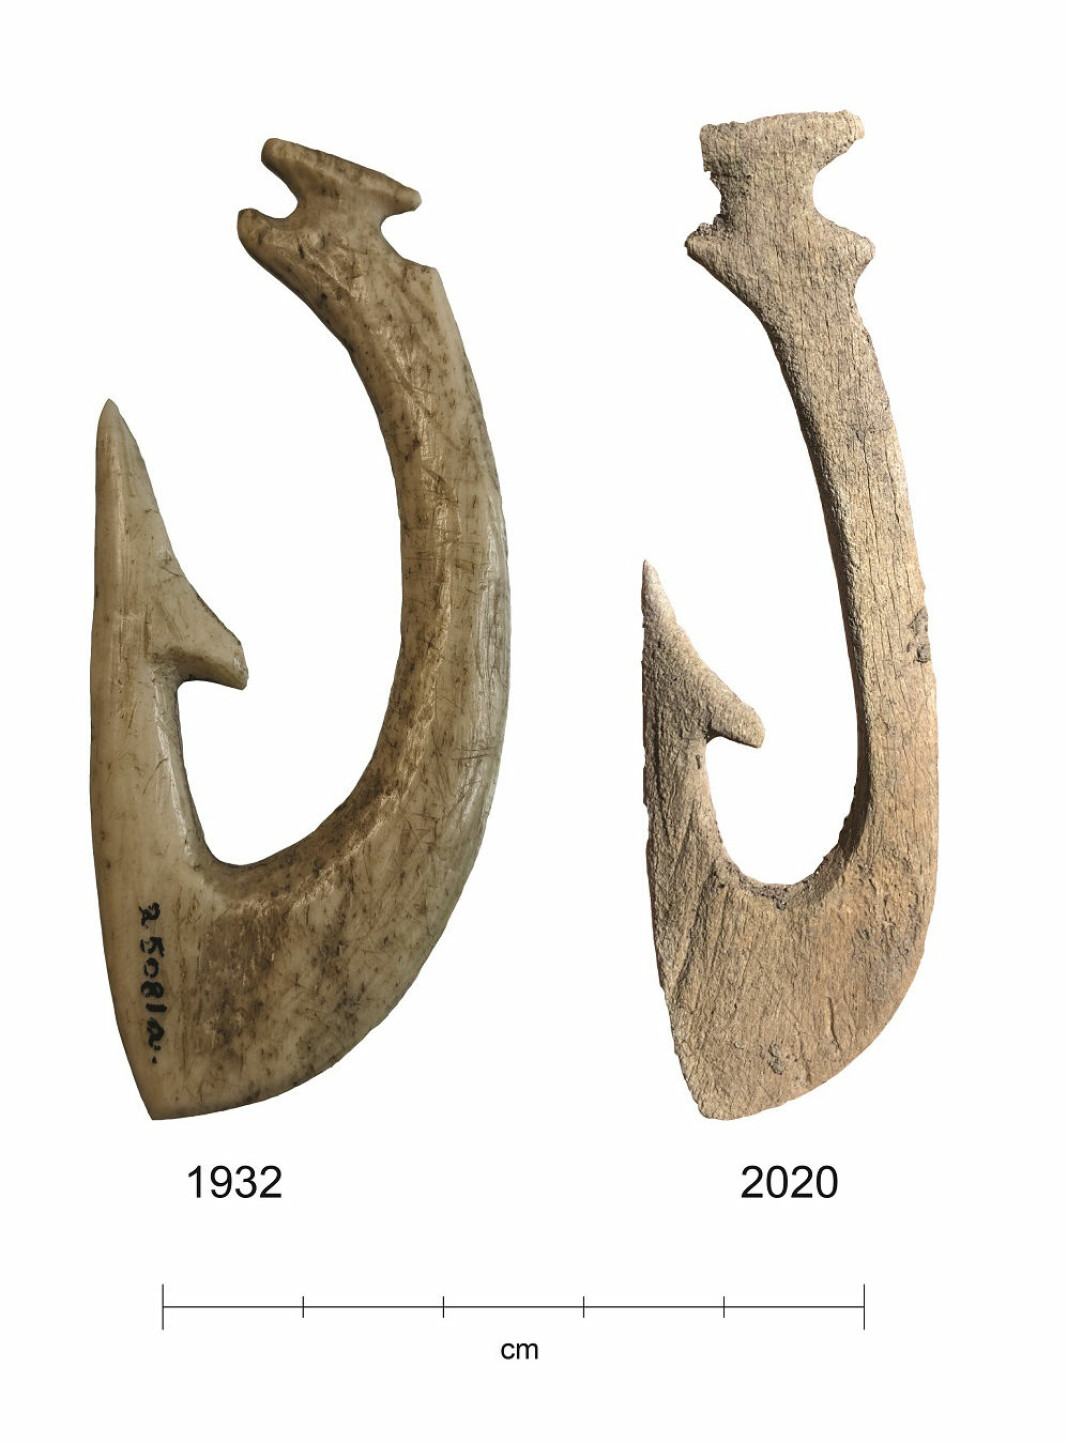 Extremely good conditions in the wetland have preserved the 5000-year-old bone implements very well. But after the wetland was drained, conditions changed. The fish hook found in 2020 is in much worse condition than the hook found in 1932.